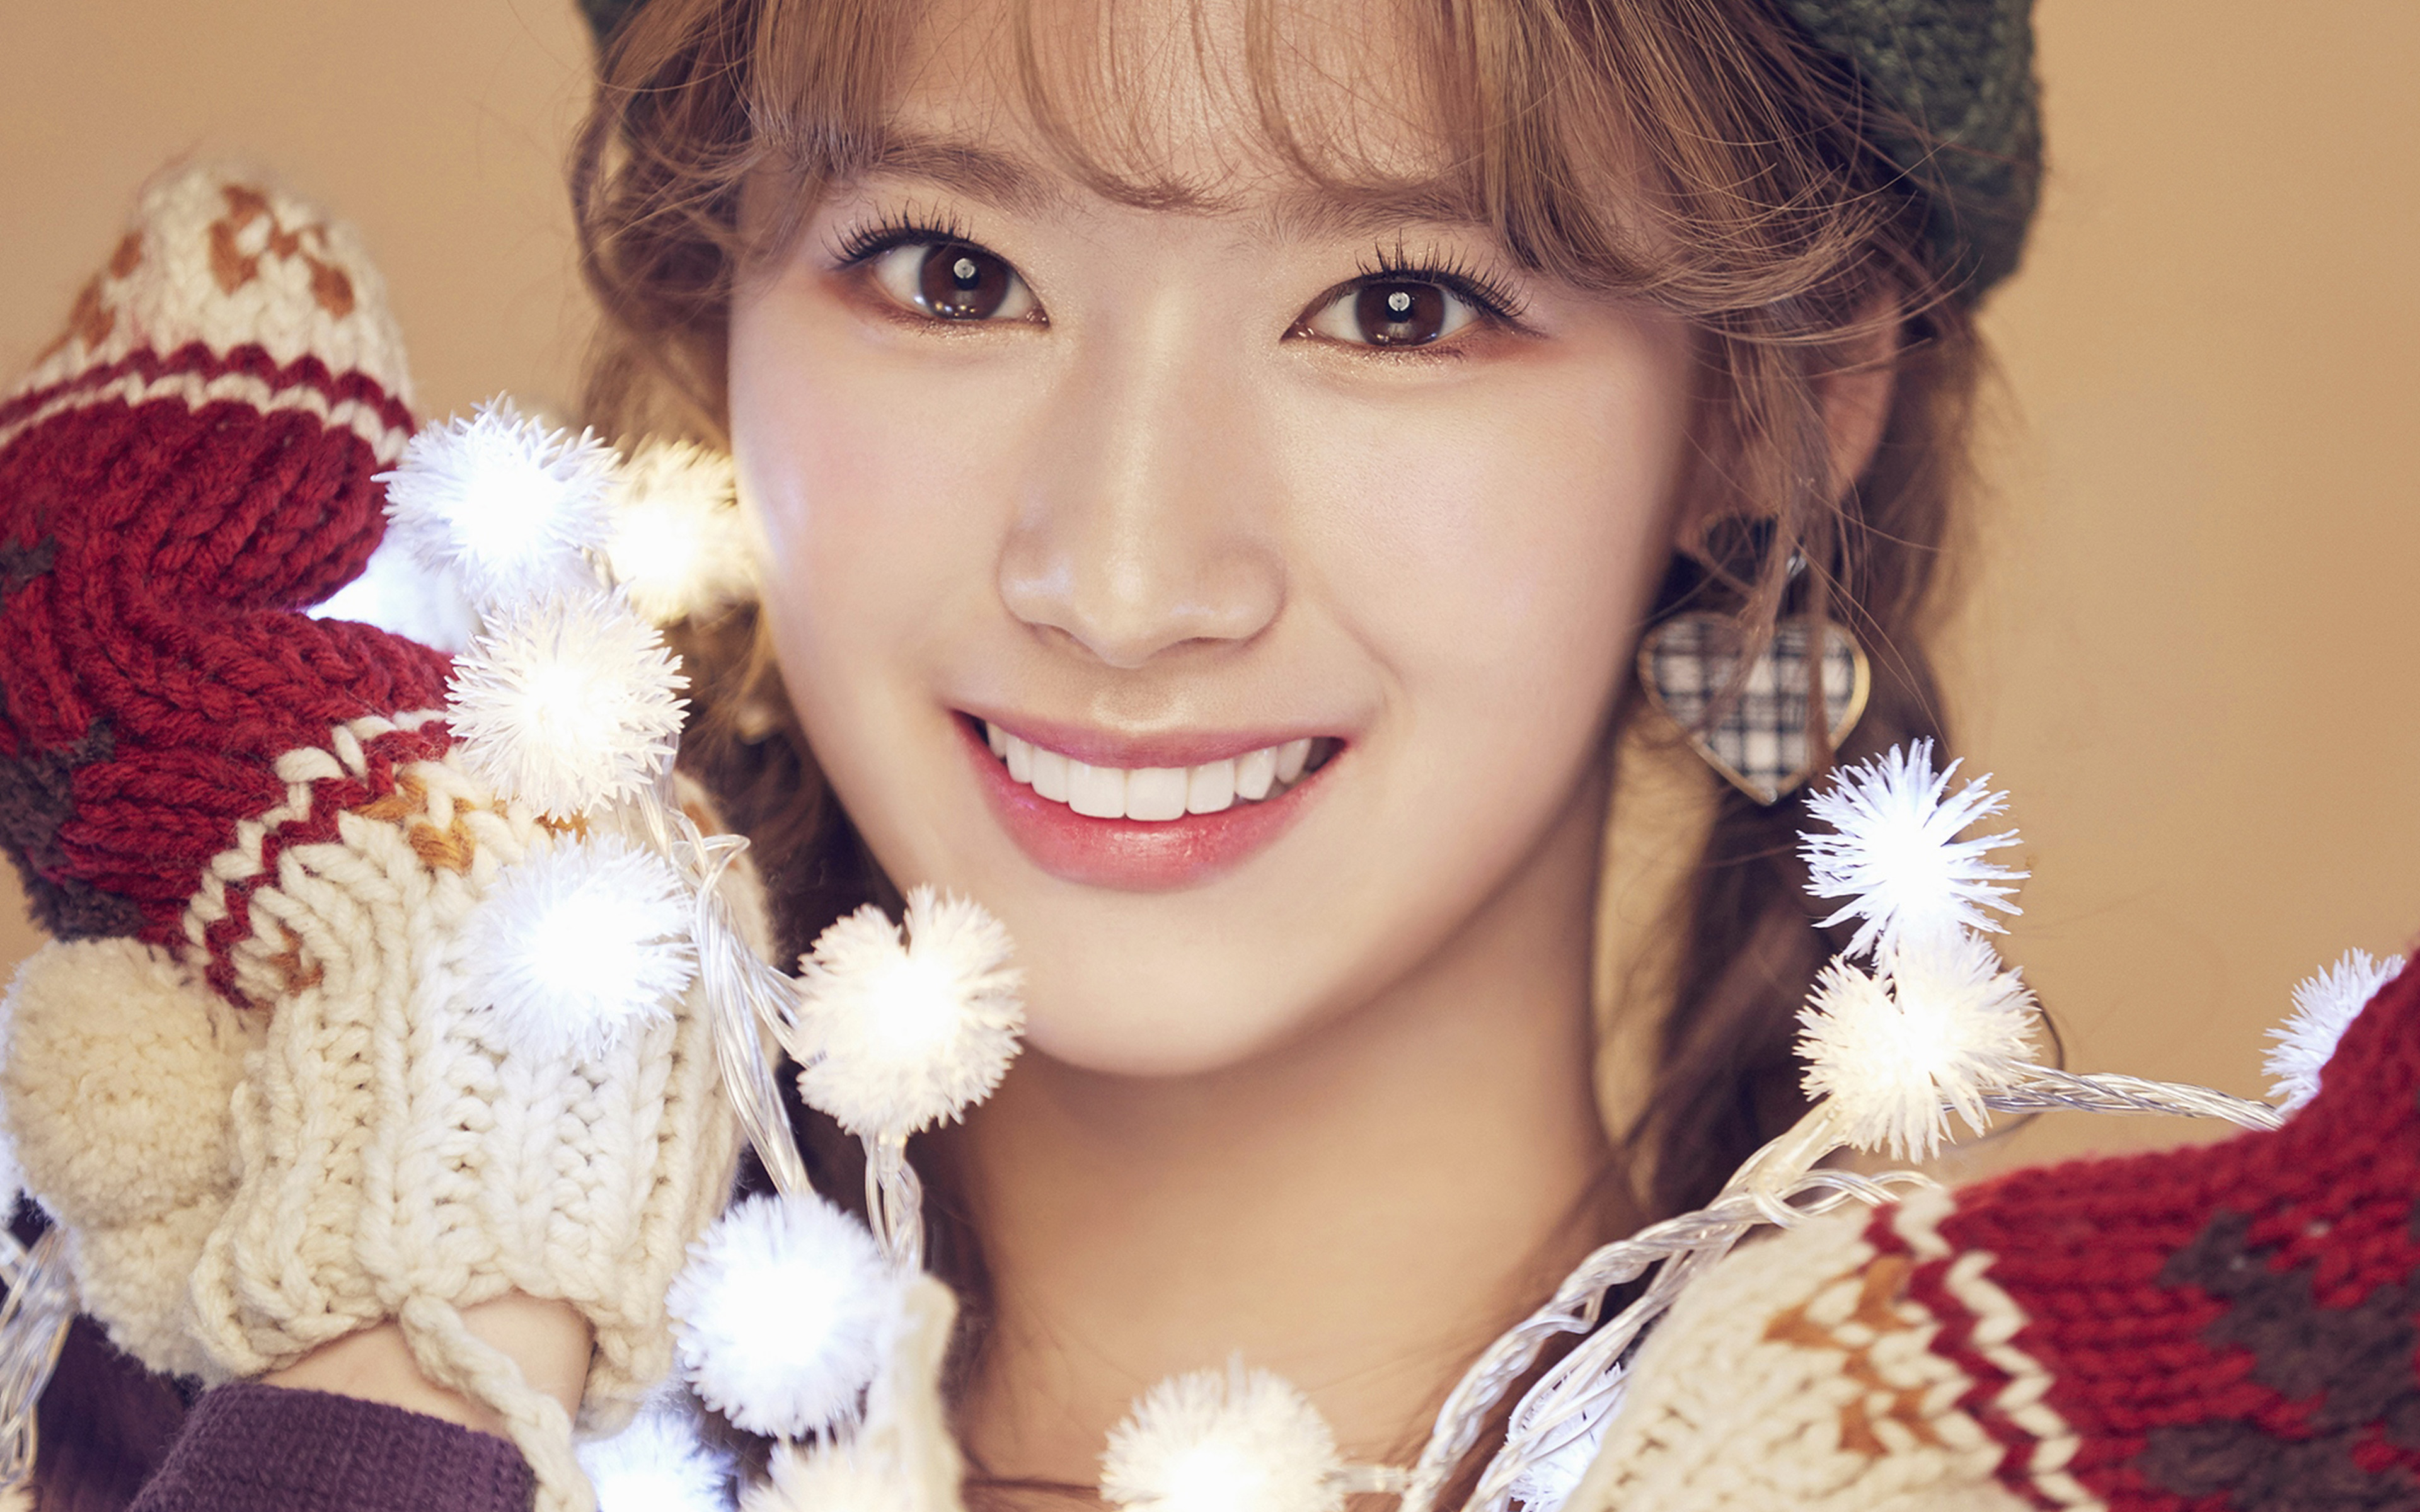 Wallpaper For Desktop Laptop Ho97 Kpop Twice Sana Girl Asian